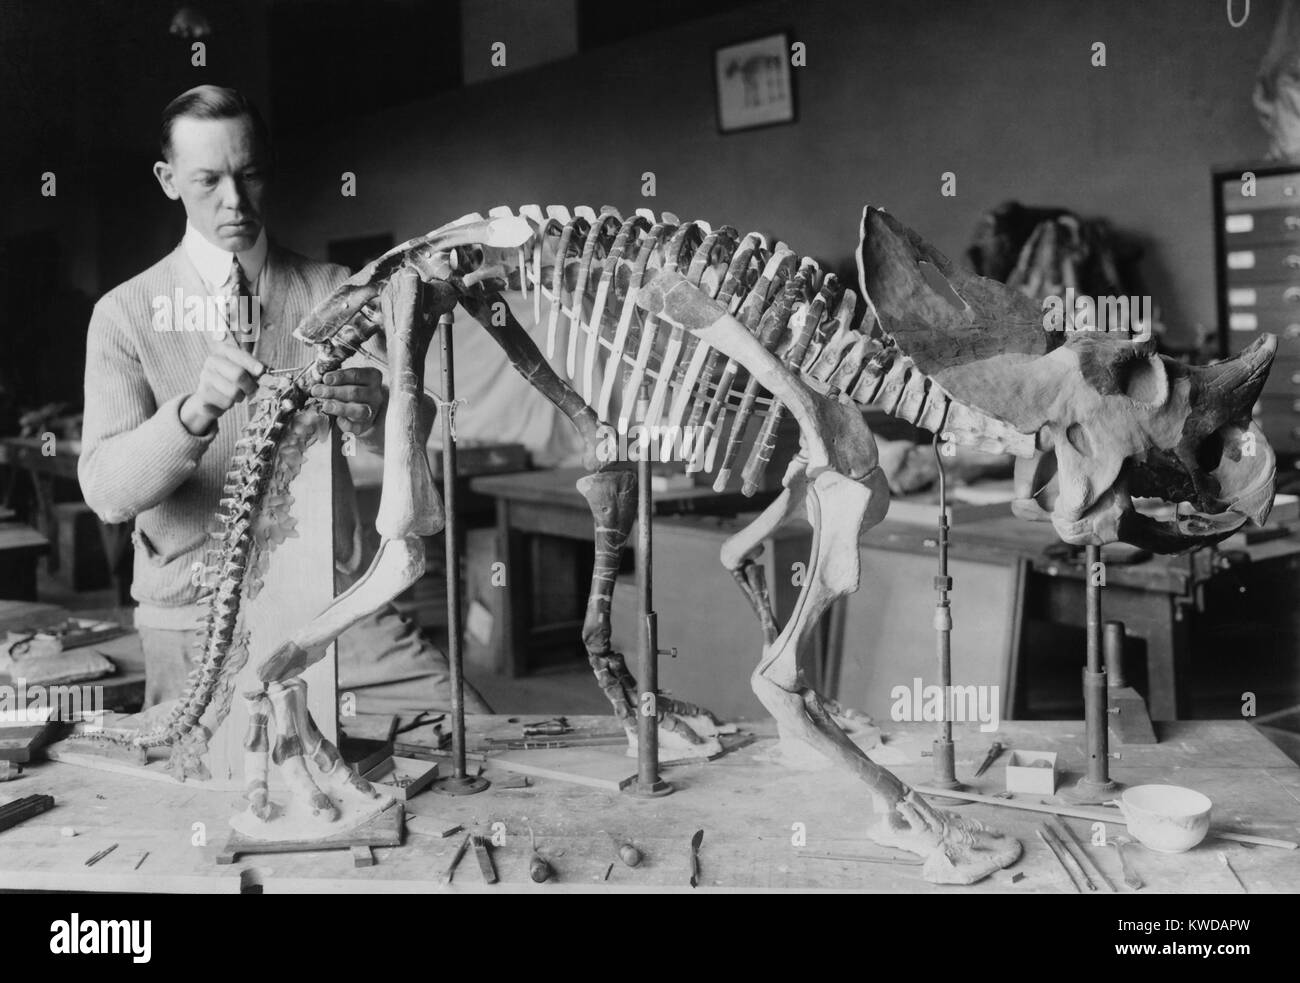 Norman Ross, preparing a baby Brachyceratops skeleton for display at the Smithsonian 1921. The dinosaur fossil was unearthed in Montana and lived seventy or eighty million years ago (BSLOC_2016_10_23) Stock Photo